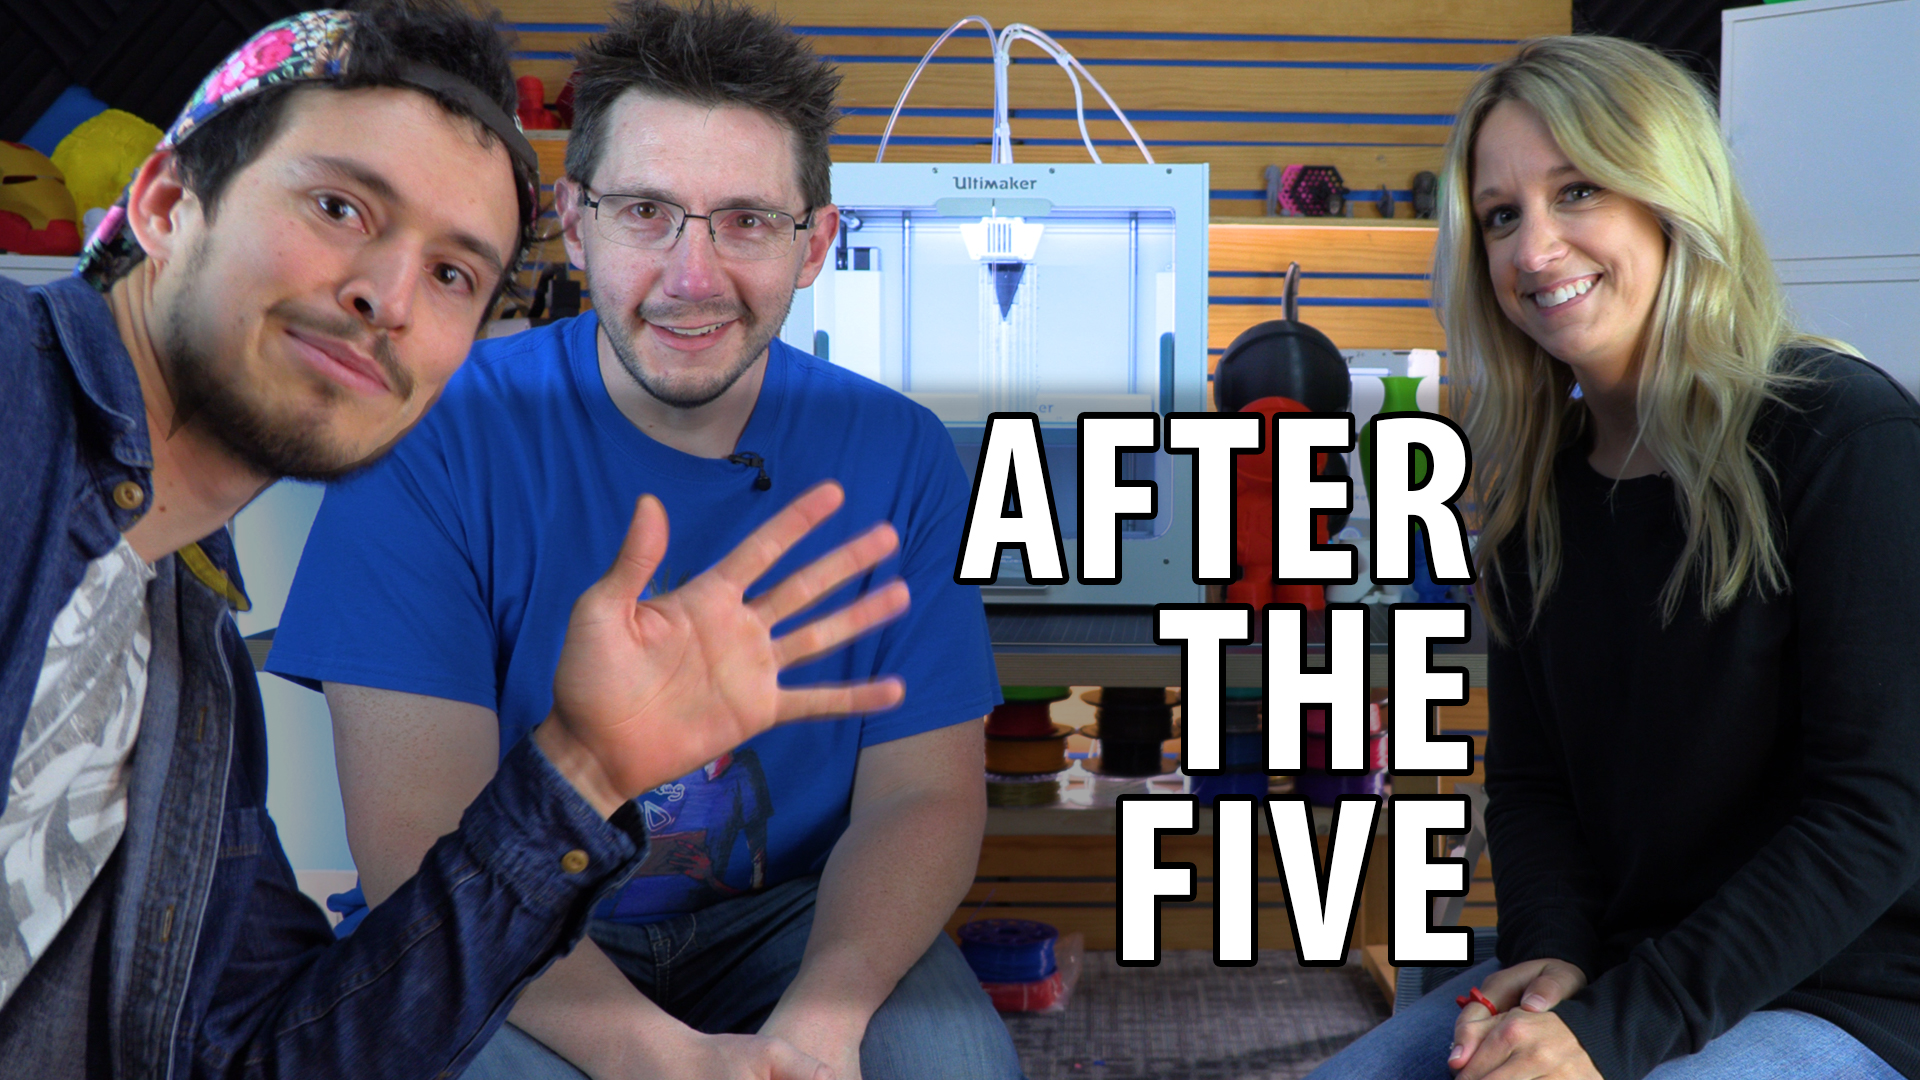 After The Five – Ultimaker S5 First Look